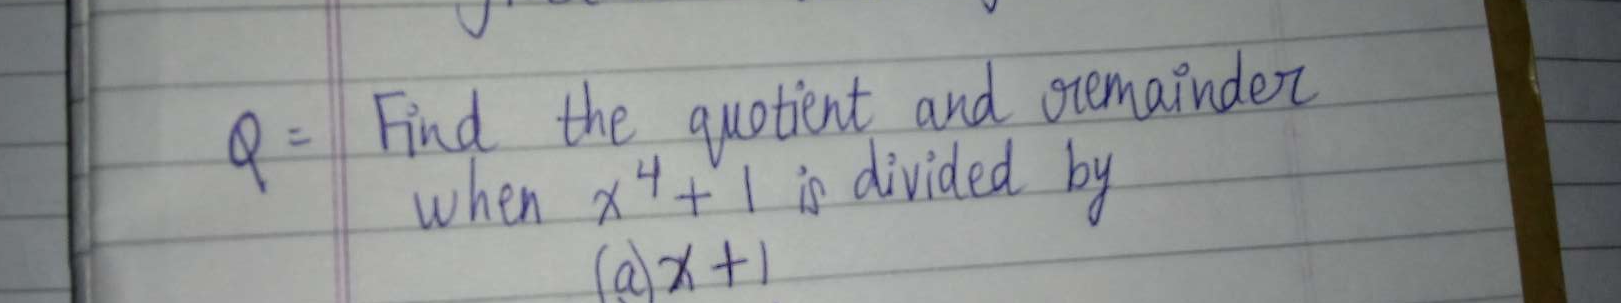 Find the quotient and reminder when x^4+1 is divided by (a)x+1